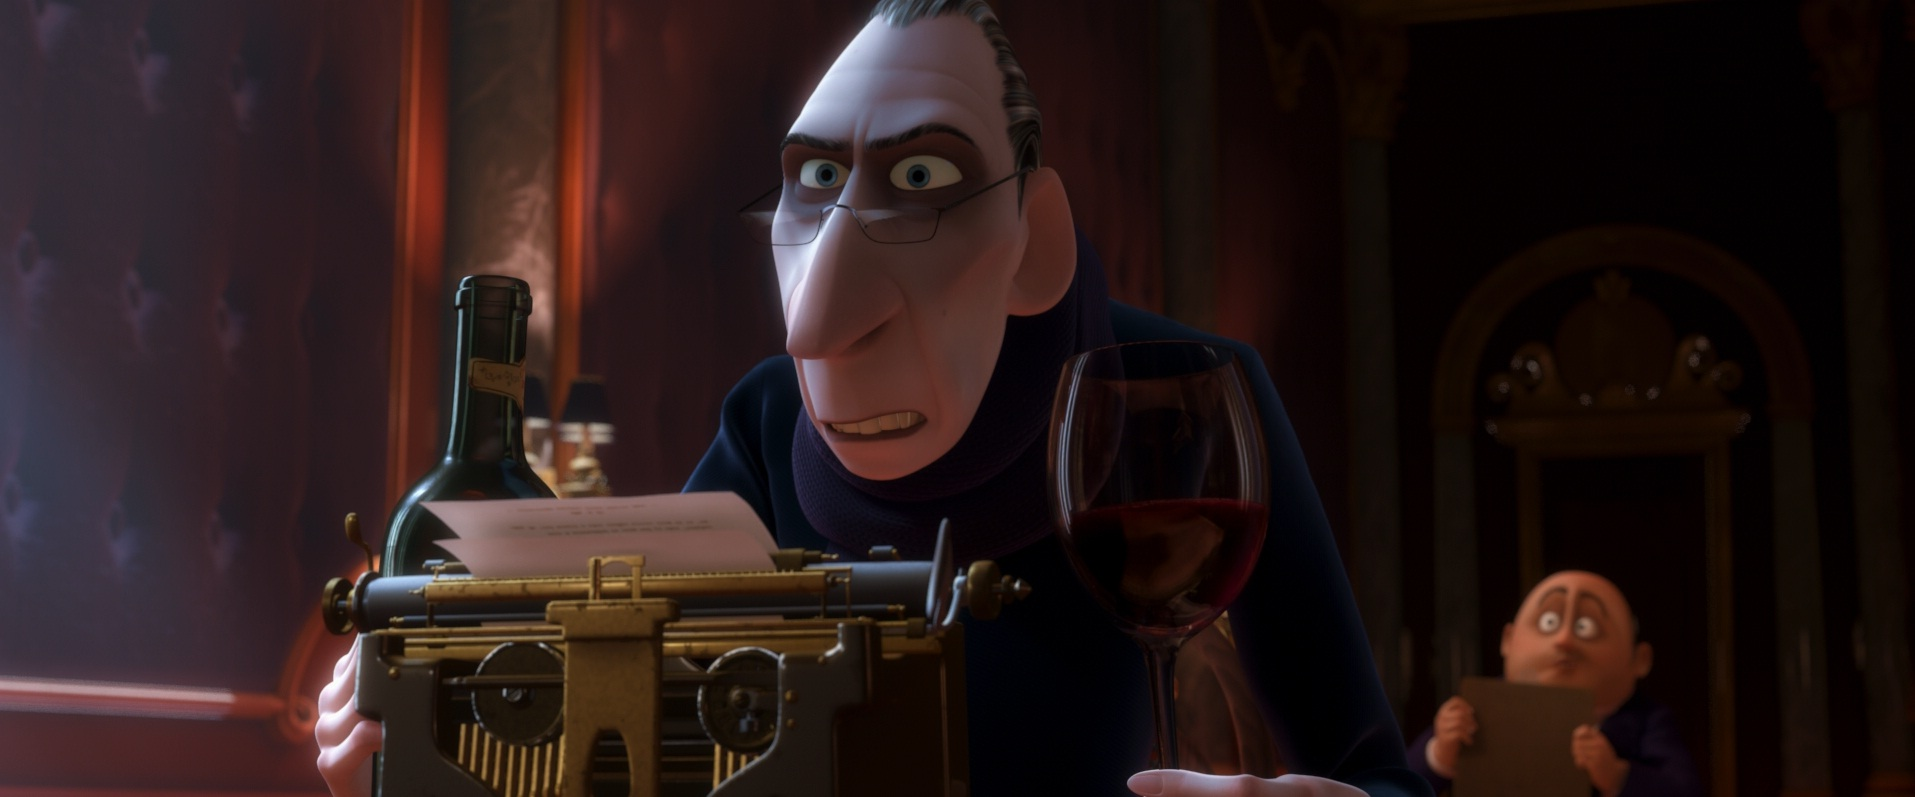 ratatouille sound film analysis Like an old world version of giacchino's jazz-infused, comic-book-kissed score for the incredibles, ratatouille is both elegant and mad, built around a sweet and playful theme called le festin, which is presented both instrumentally and vocally (sung by the charming french star camille) and is as timeless as the dish for which the film is based.